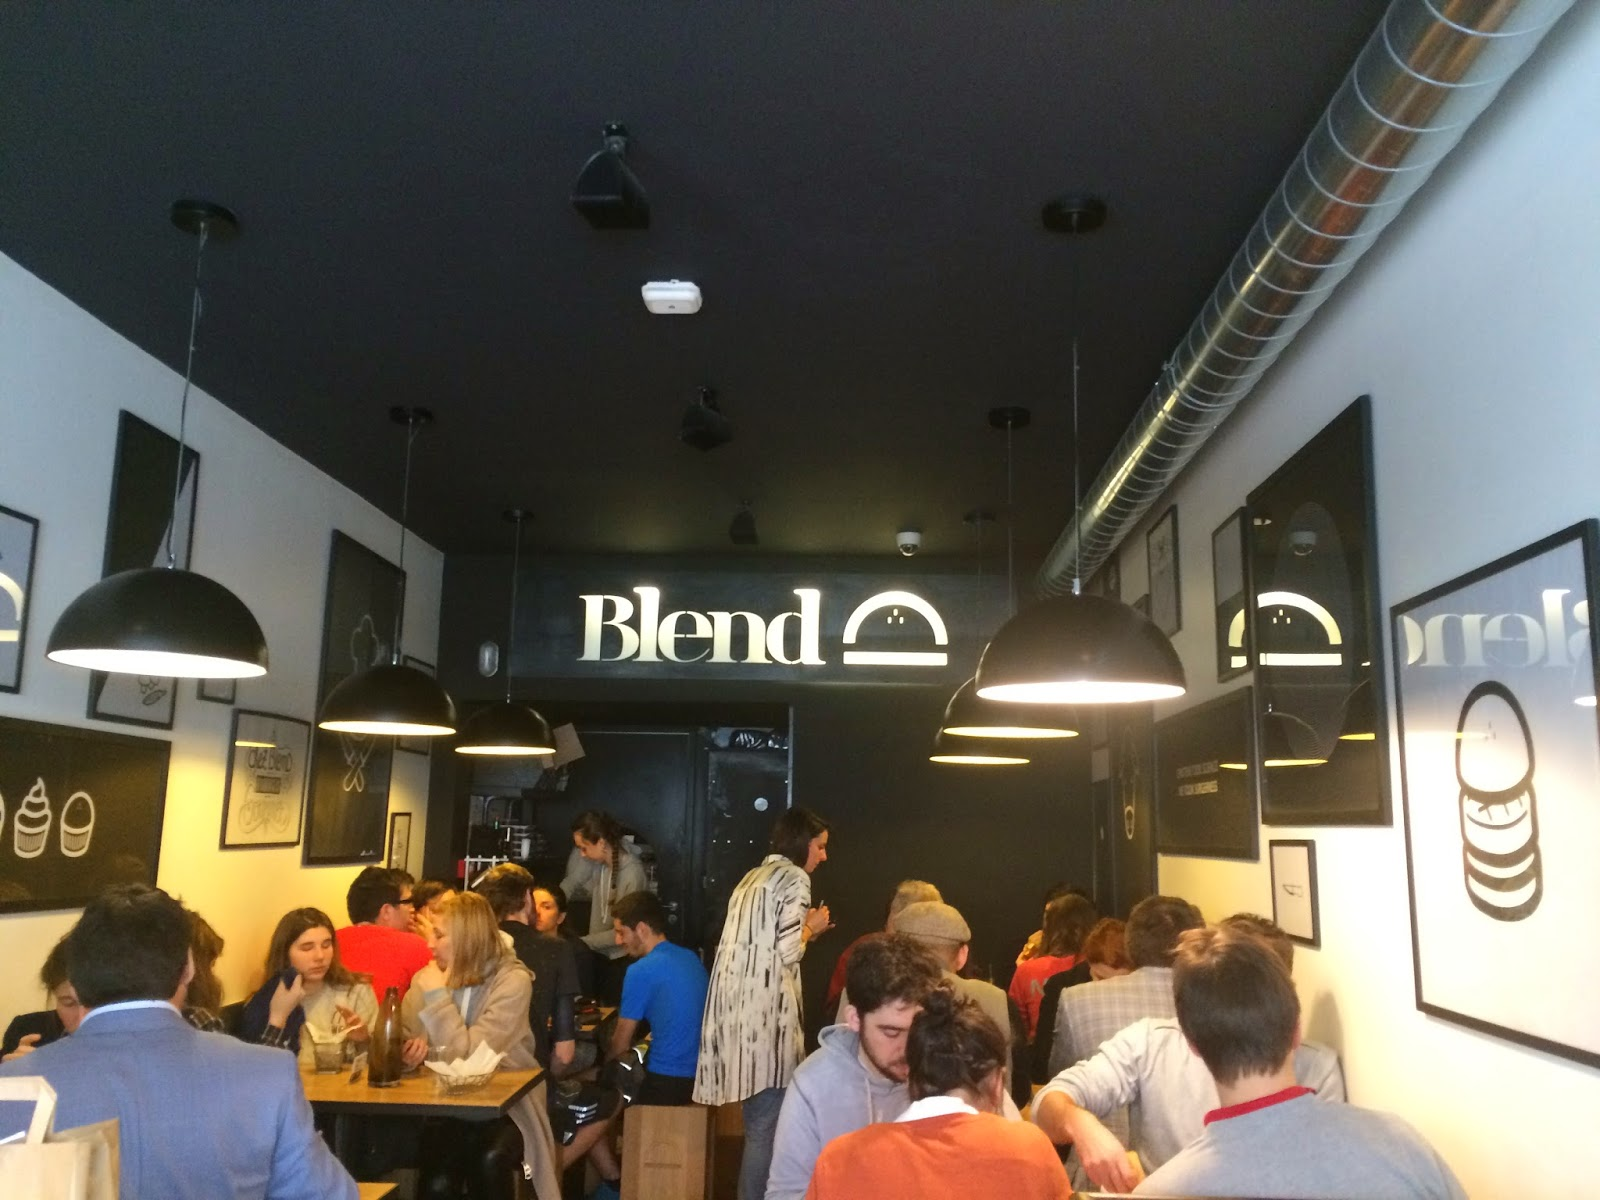 Interior of Blend, rue d'Argout, Paris